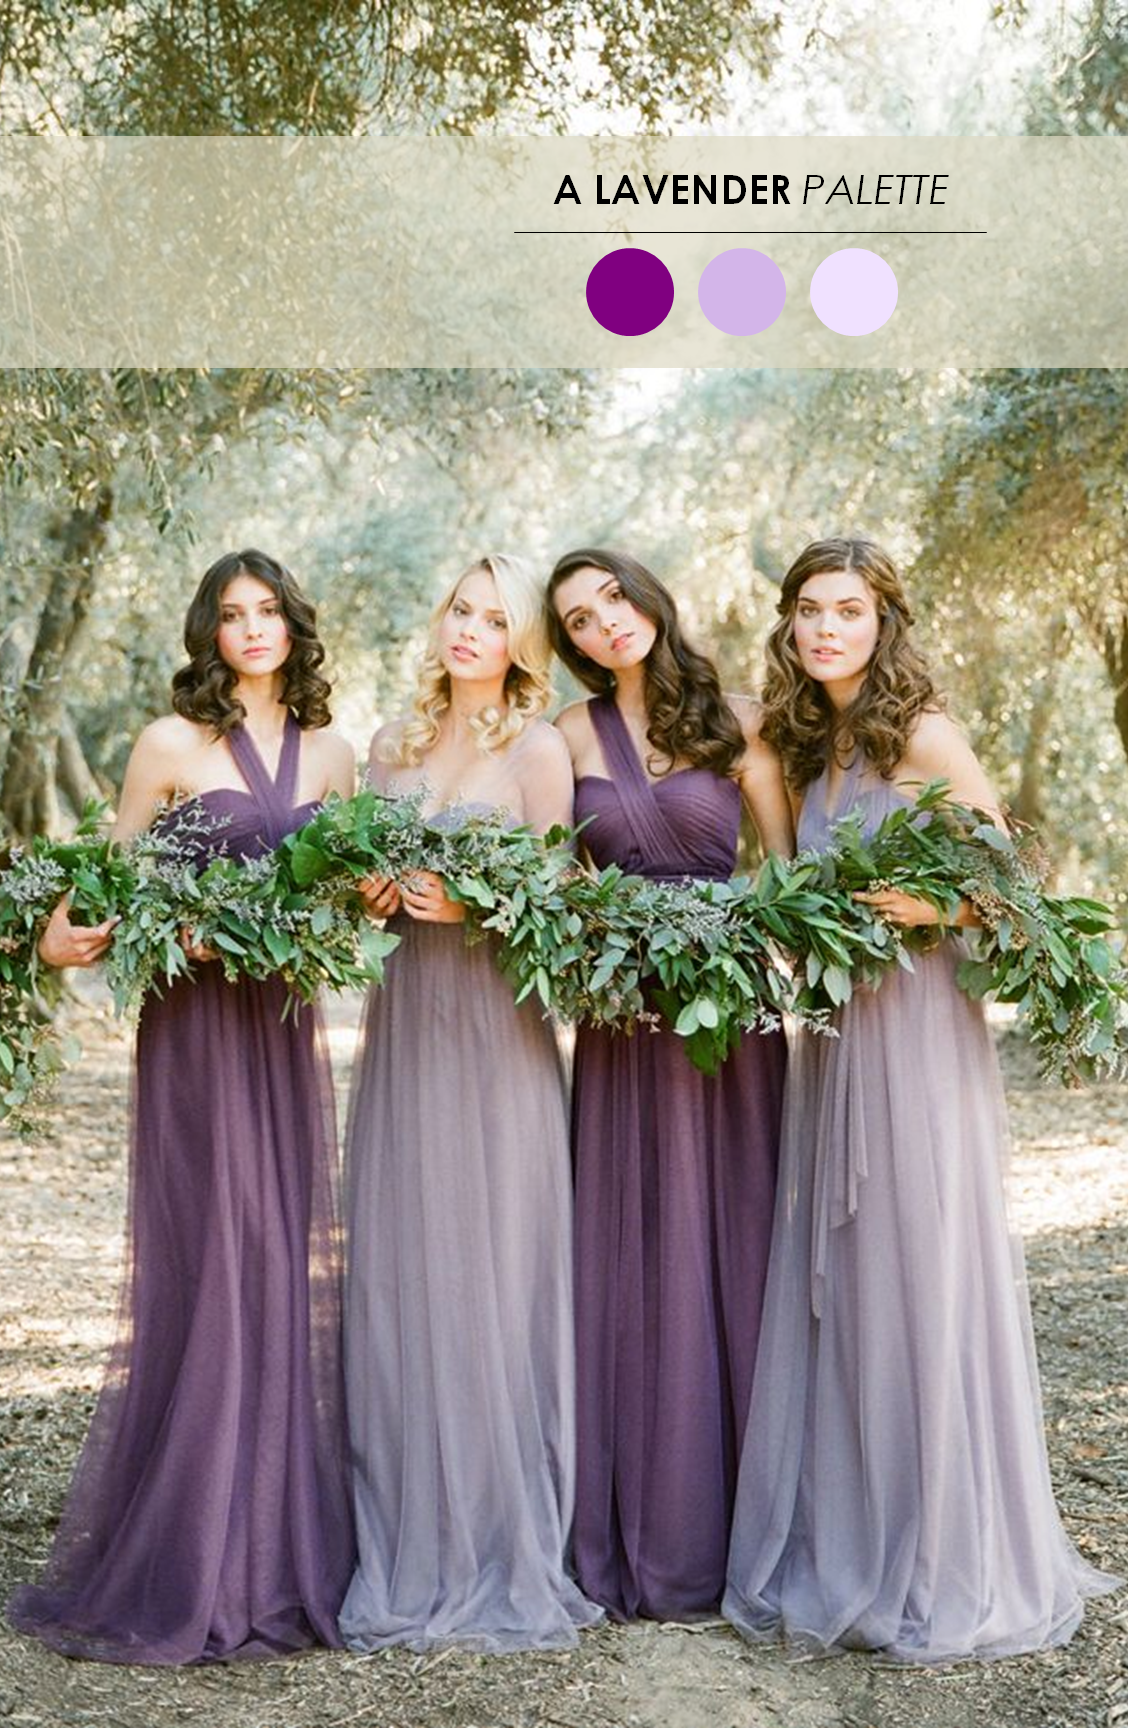 Lilac Bridesmaid Dresses | 18 Fall Wedding Color Palettes The Ultimate Guide Inspiration